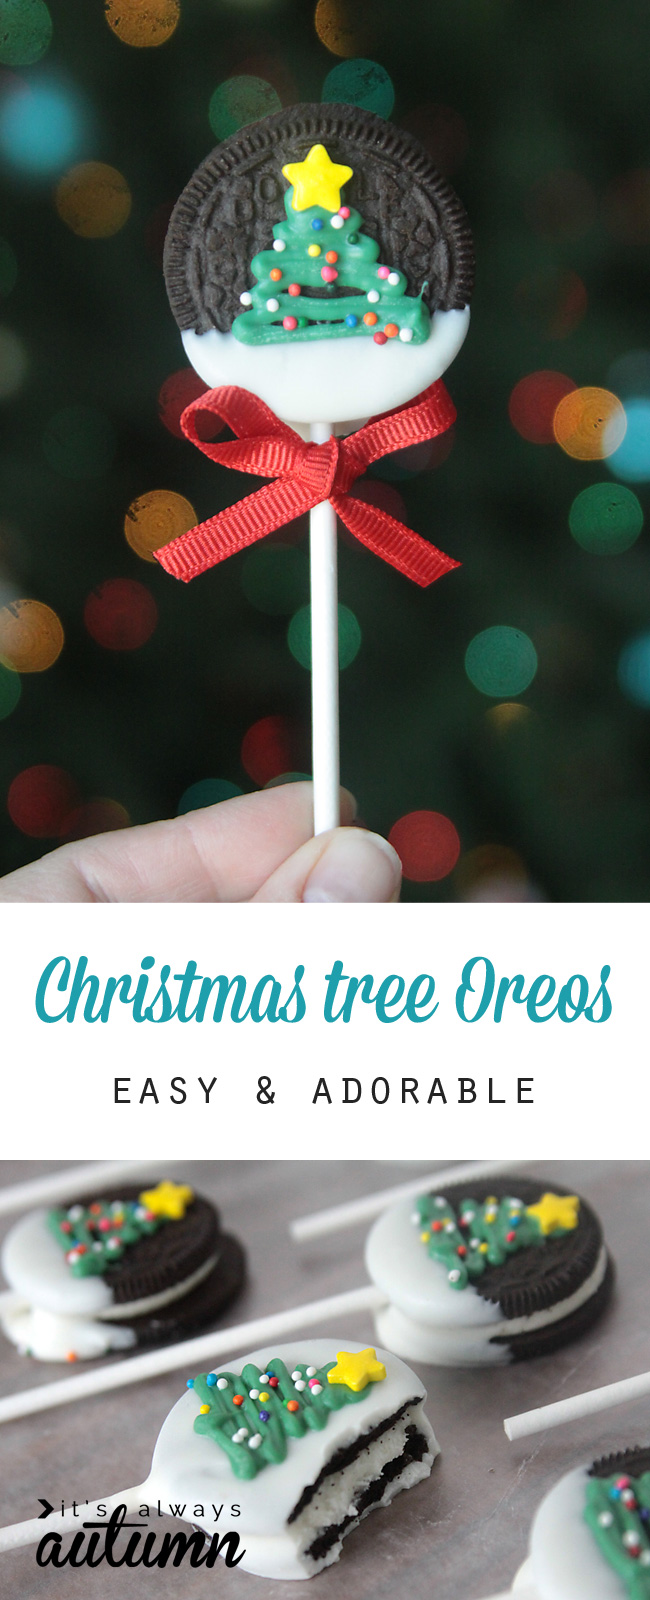 Edible Christmas Gifts - The 36th AVENUE